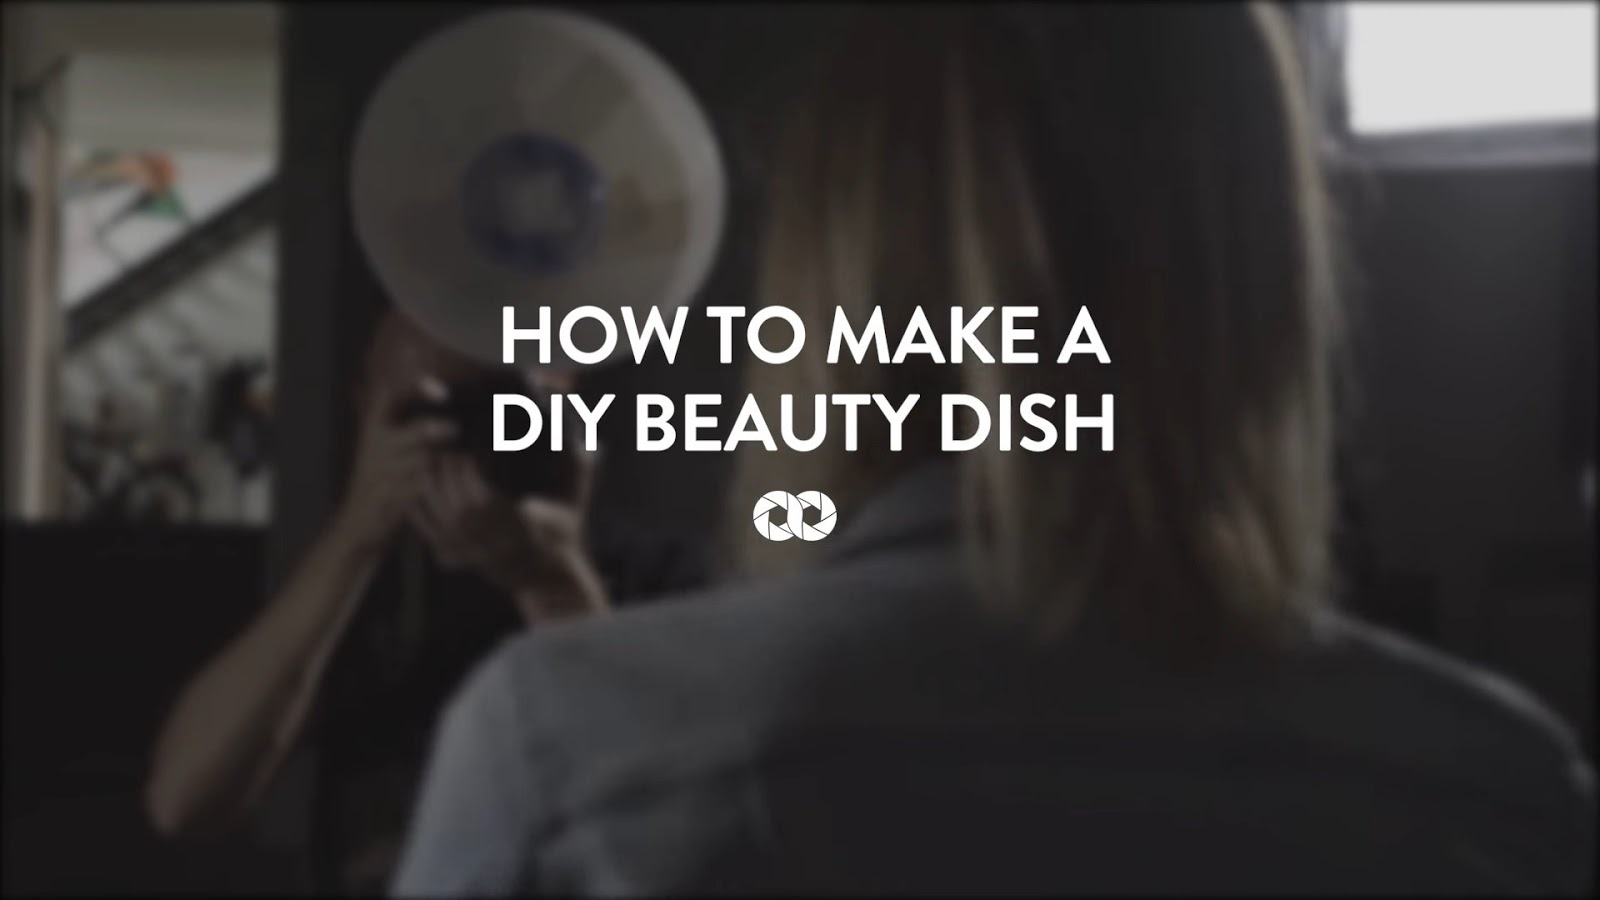 How to make a DIY beauty dish